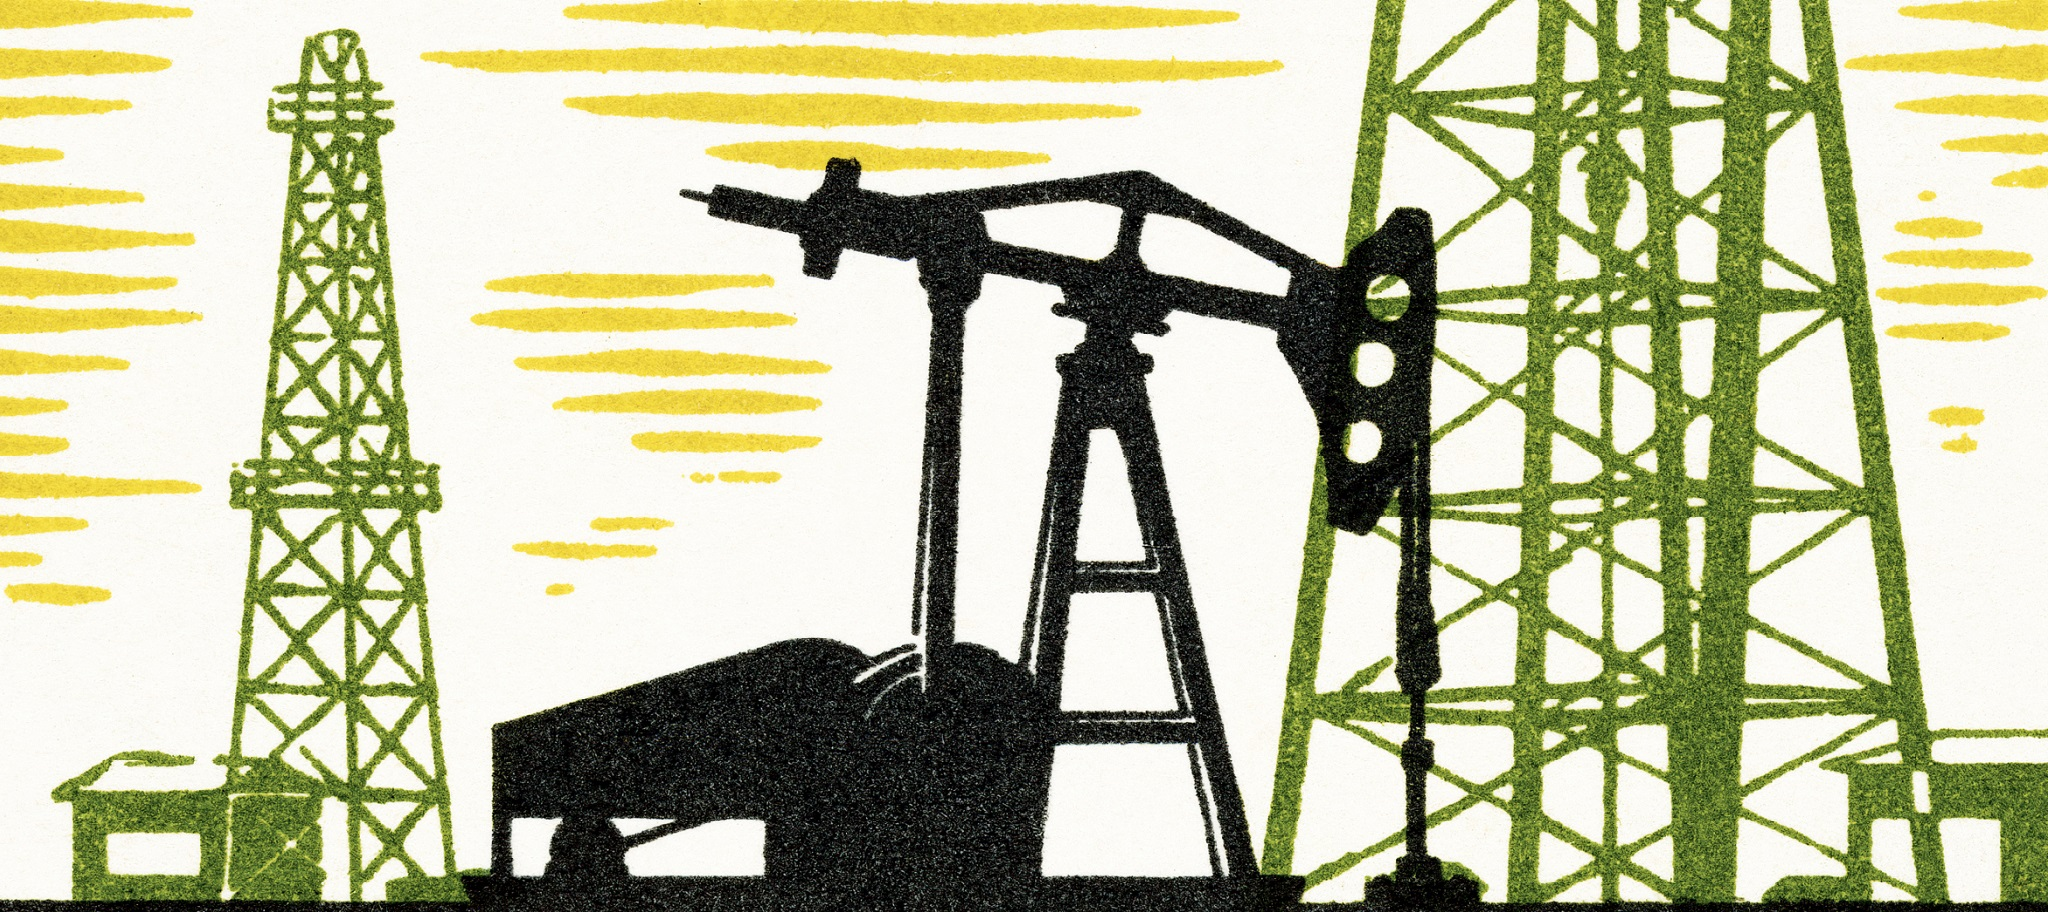 Don't judge the outlook by the oil price